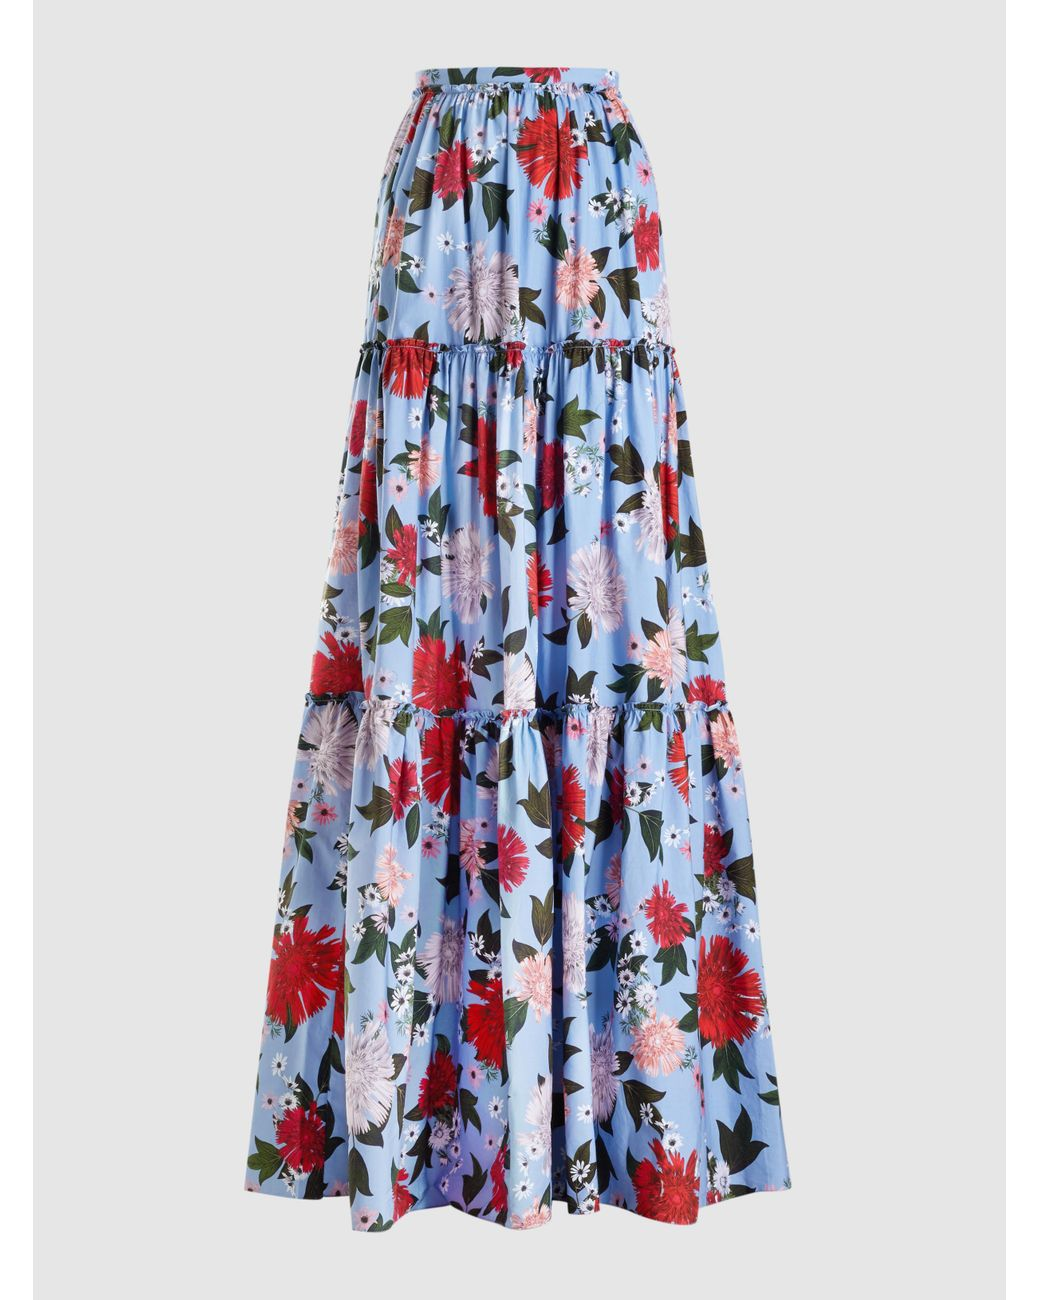 a206e0202 Erdem Sigrid Floral-print Cotton Maxi Skirt in Blue - Lyst